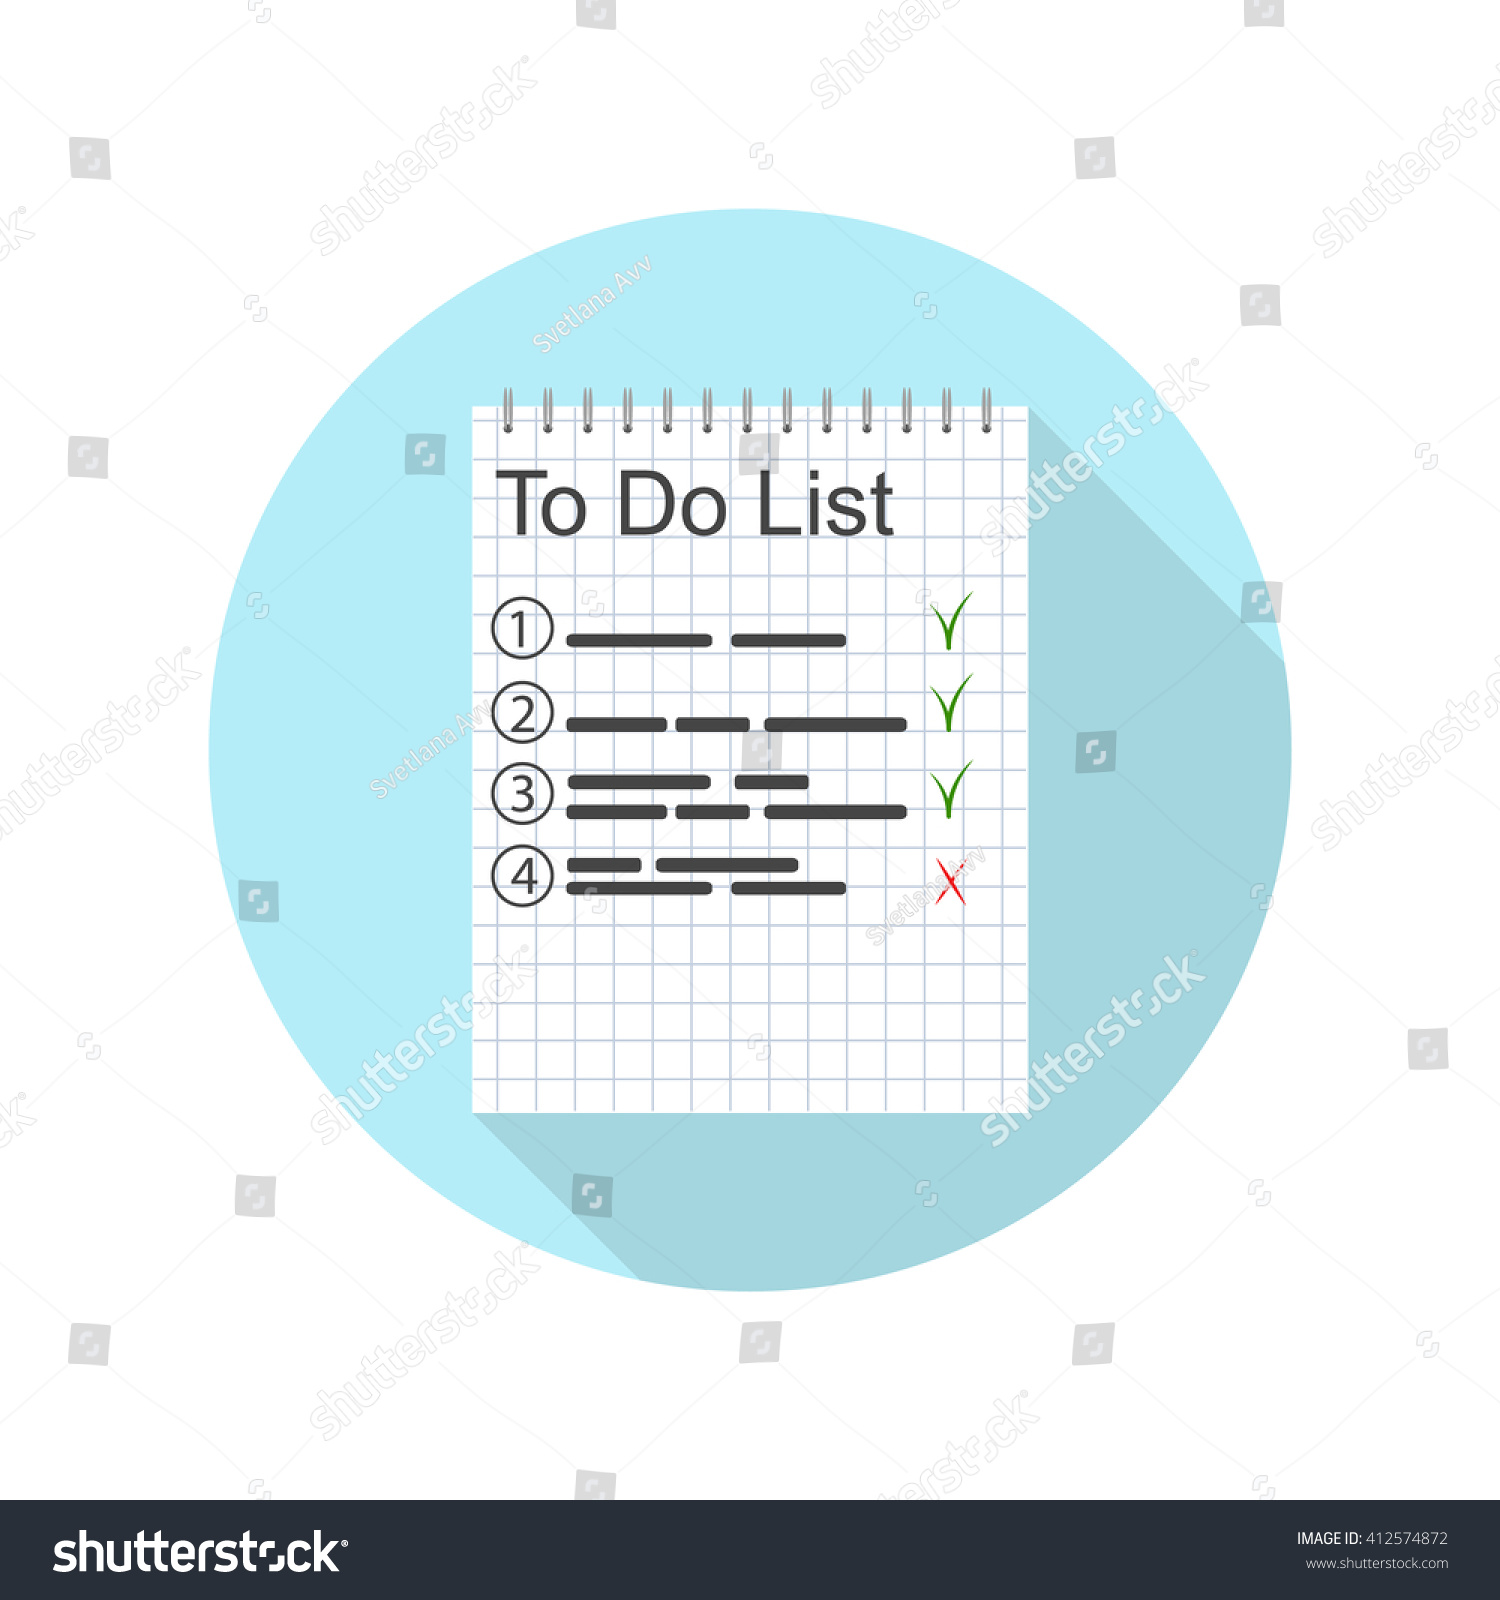 work to do list